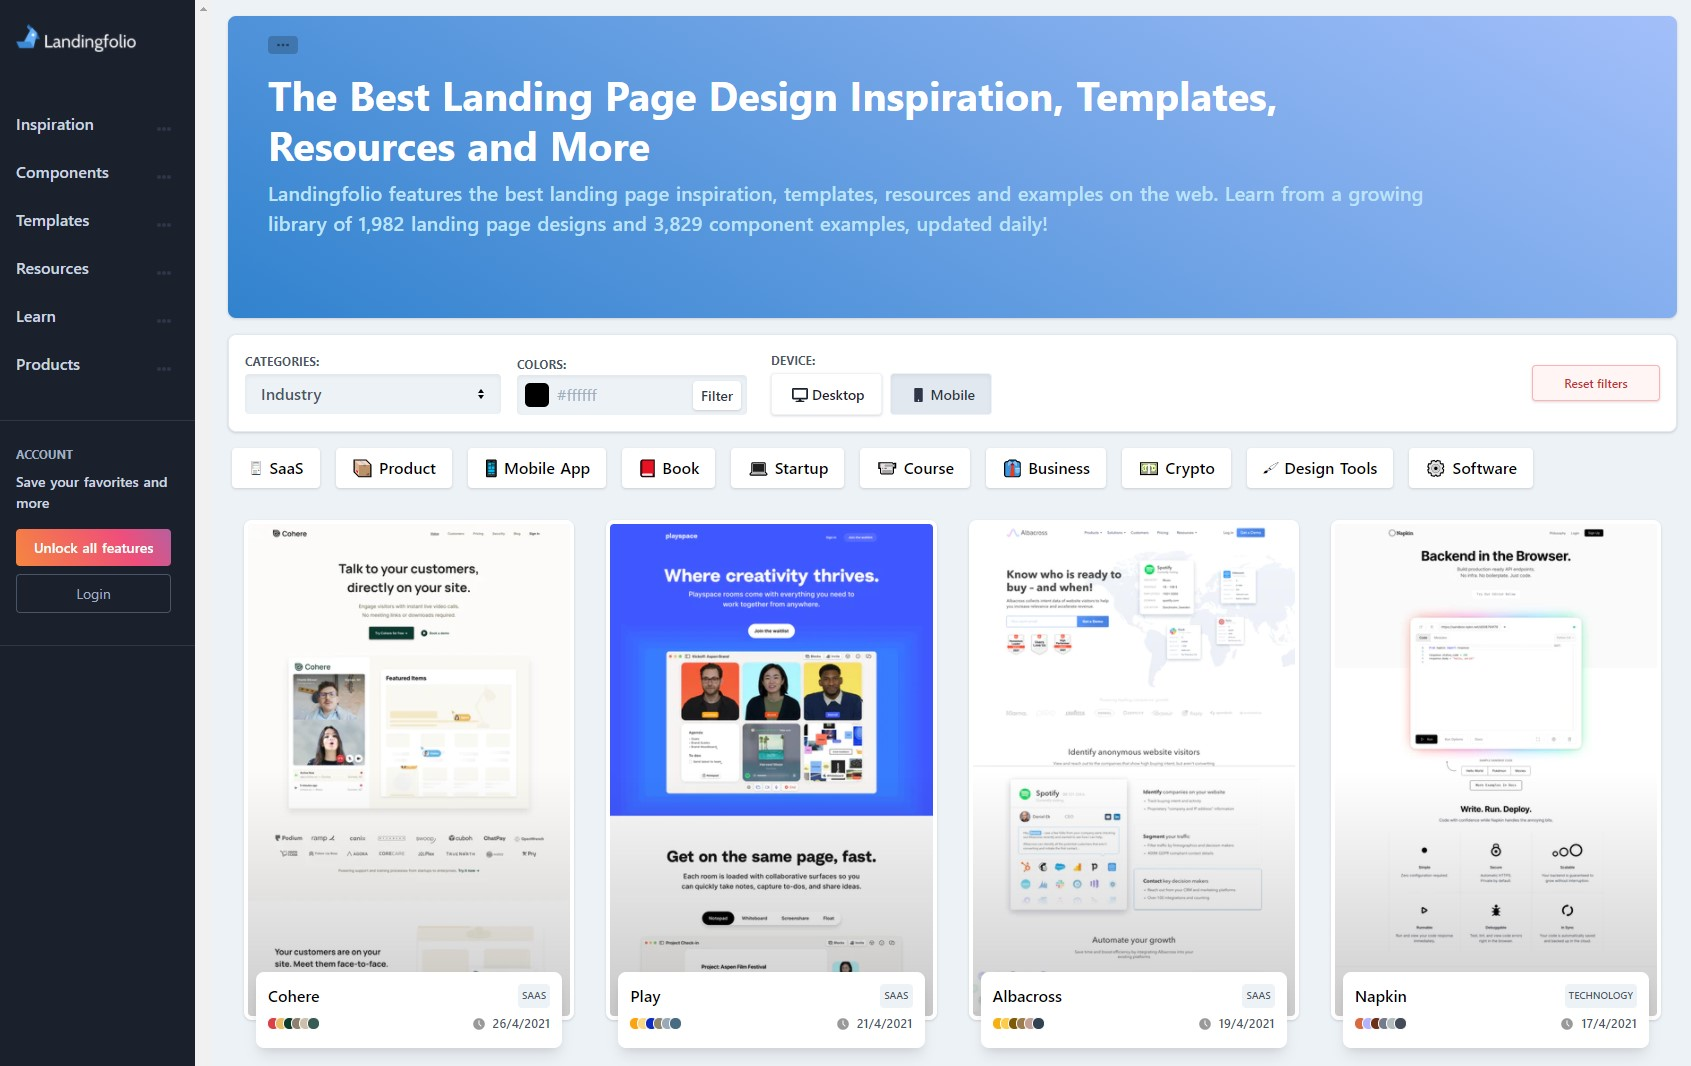 The Best Landing Page Design Inspiration, Templates, Resources and More | Landingfolio